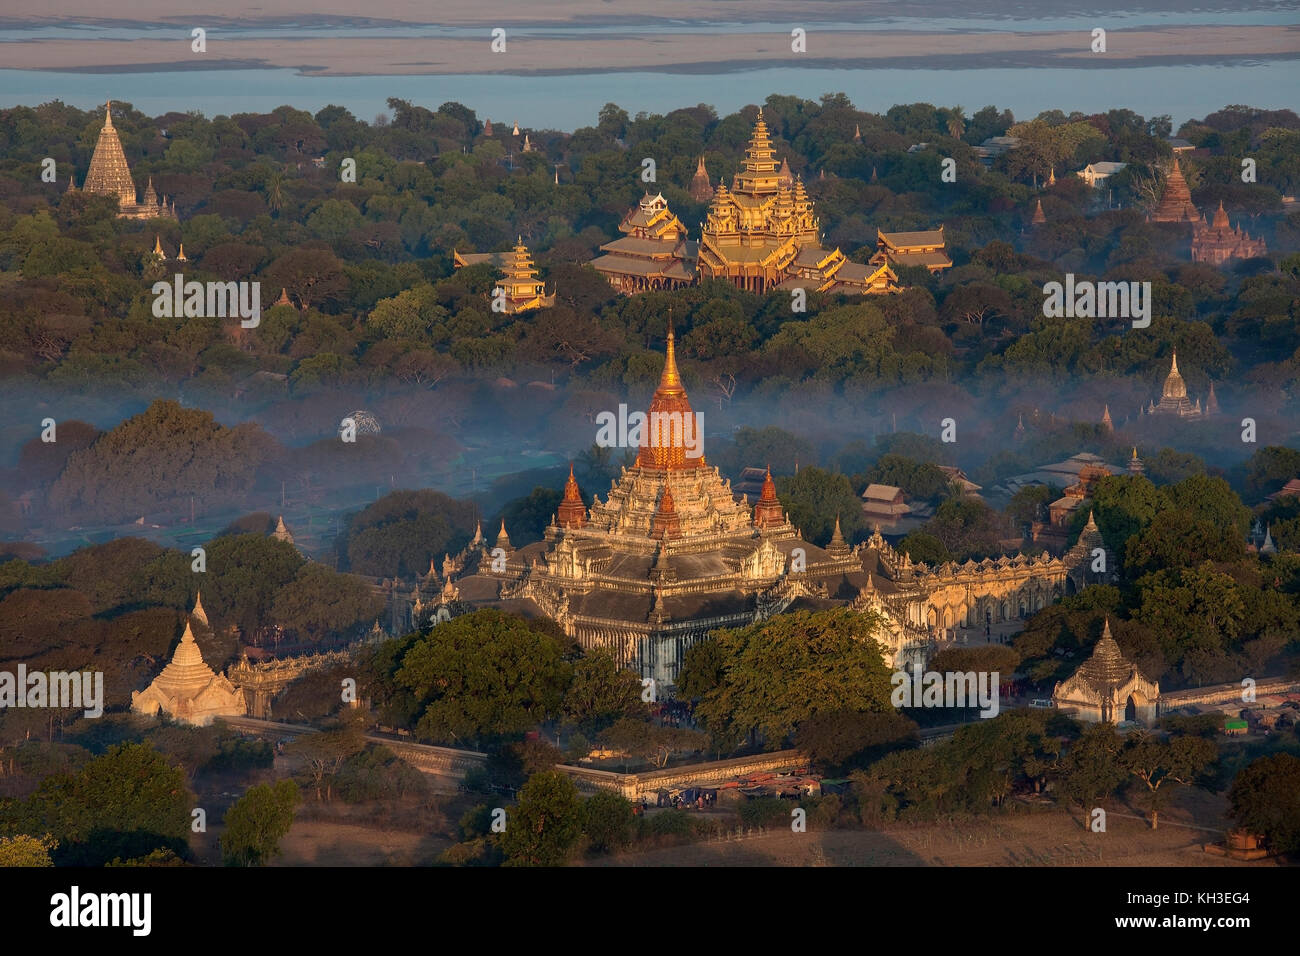 Aerial view of the early morning sunshine on the Ananda Buddhist Temple (foreground) in the ancient city of Bagan - Stock Image